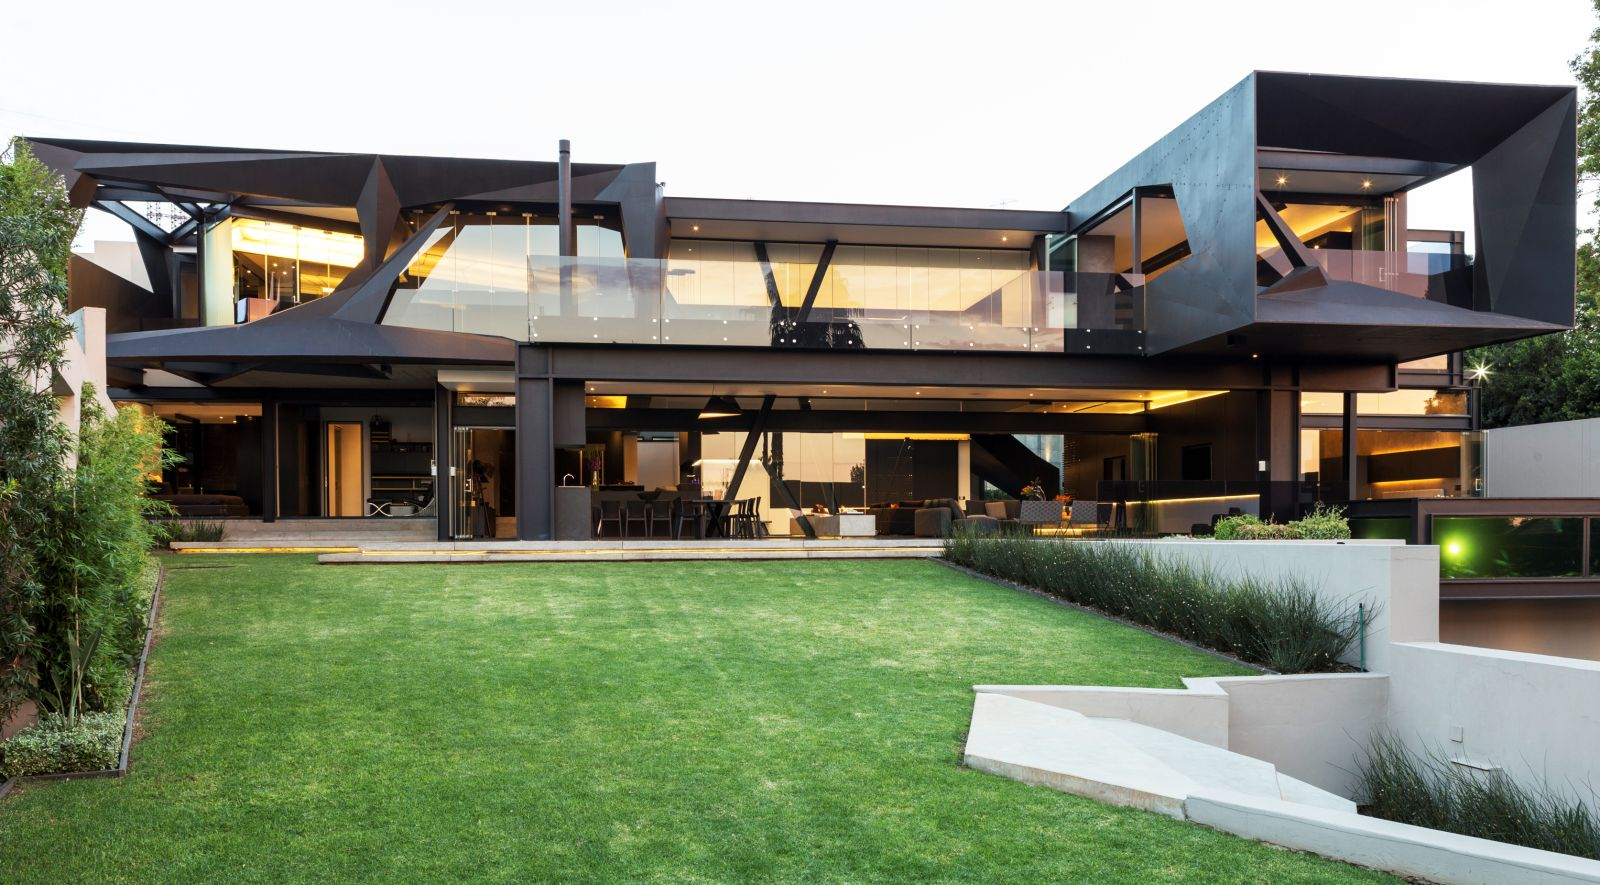 Kloof road house by nico van der meulen architects for Home architecture photos